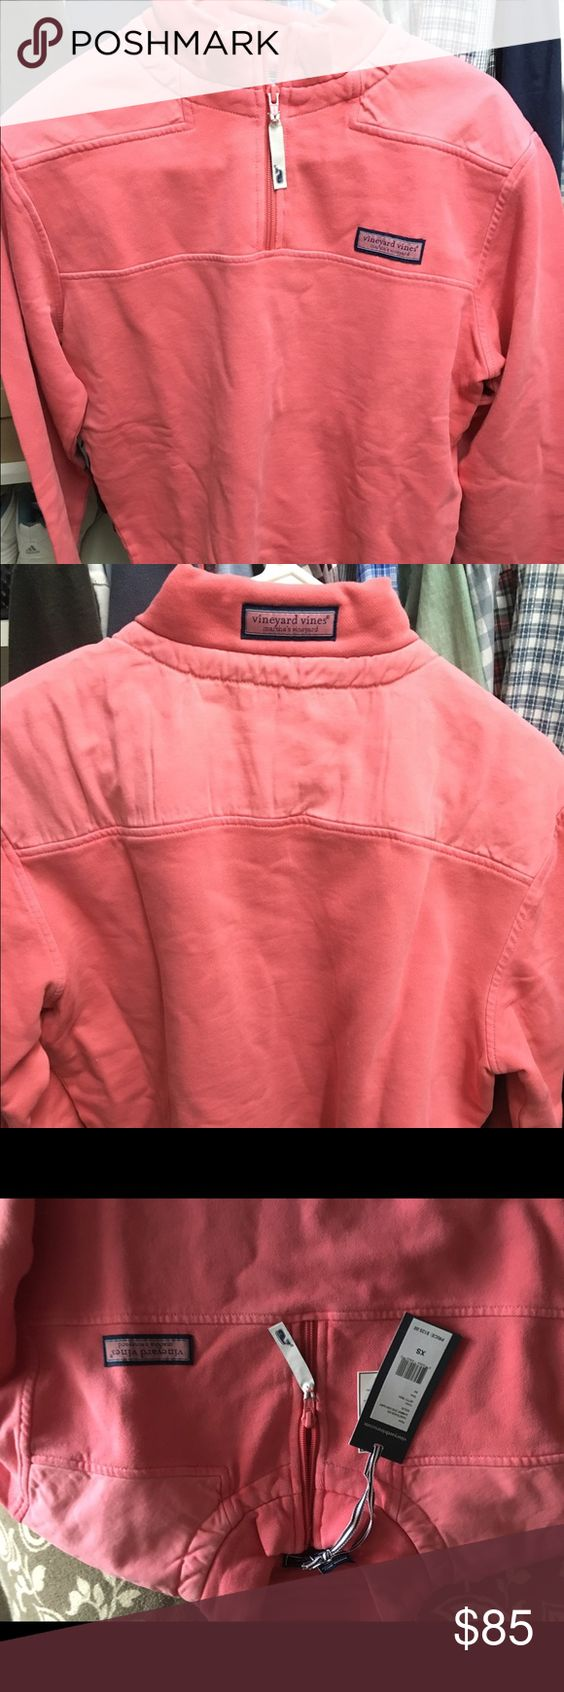 Shep shirt. Never worn with tags. It's men but women can totally wear it since the color is salmon Vineyard Vines Tops Sweatshirts & Hoodies